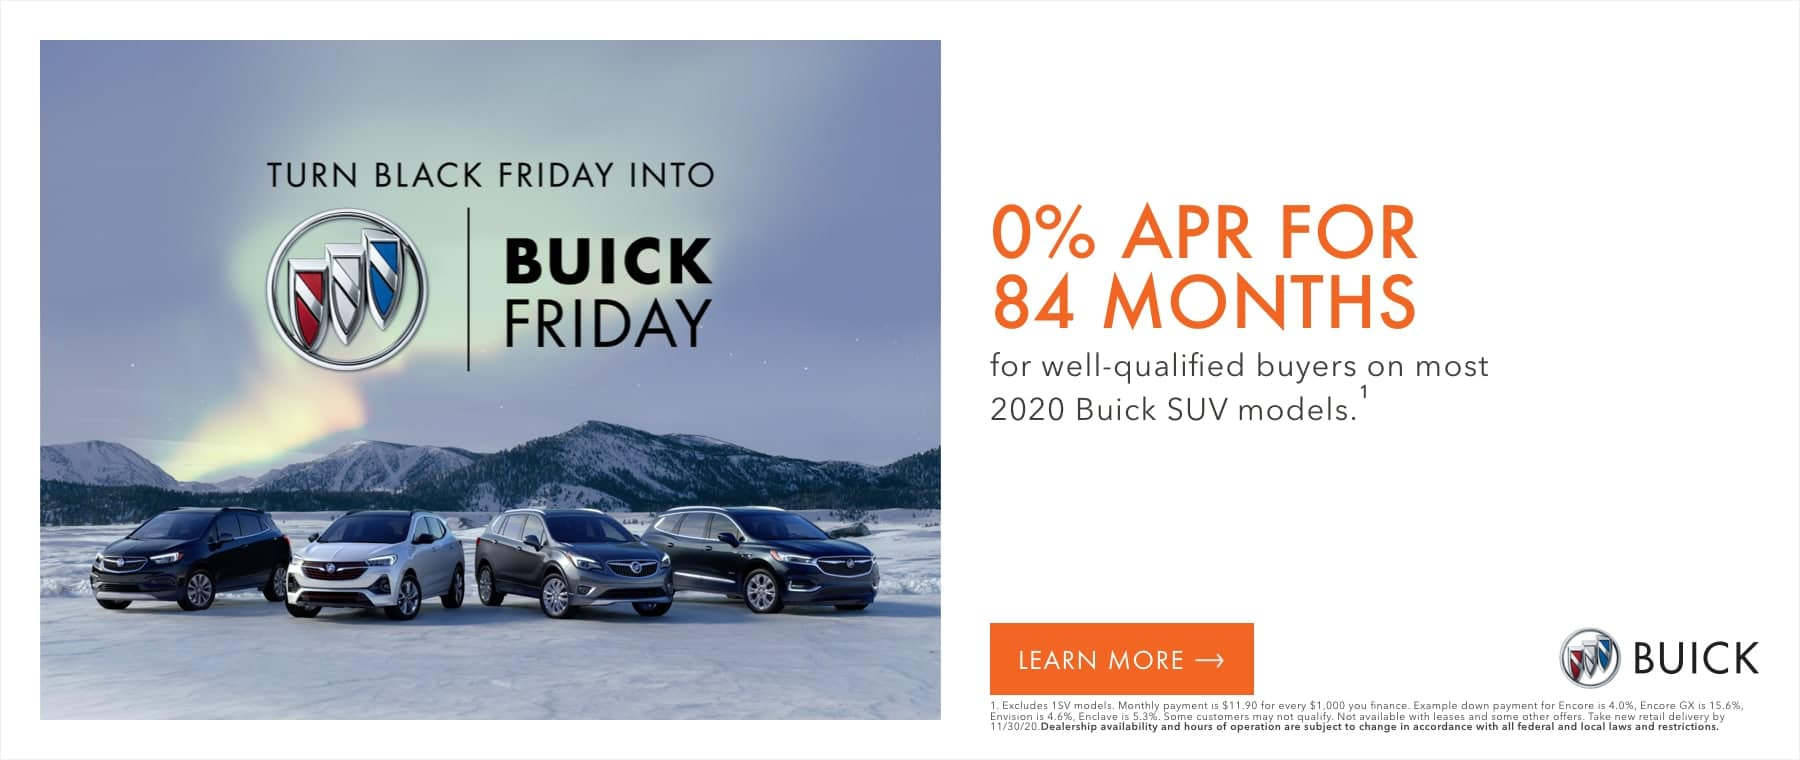 0% APR for 84 months for well-qualified buyers on most 2020 Buick SUV models.1